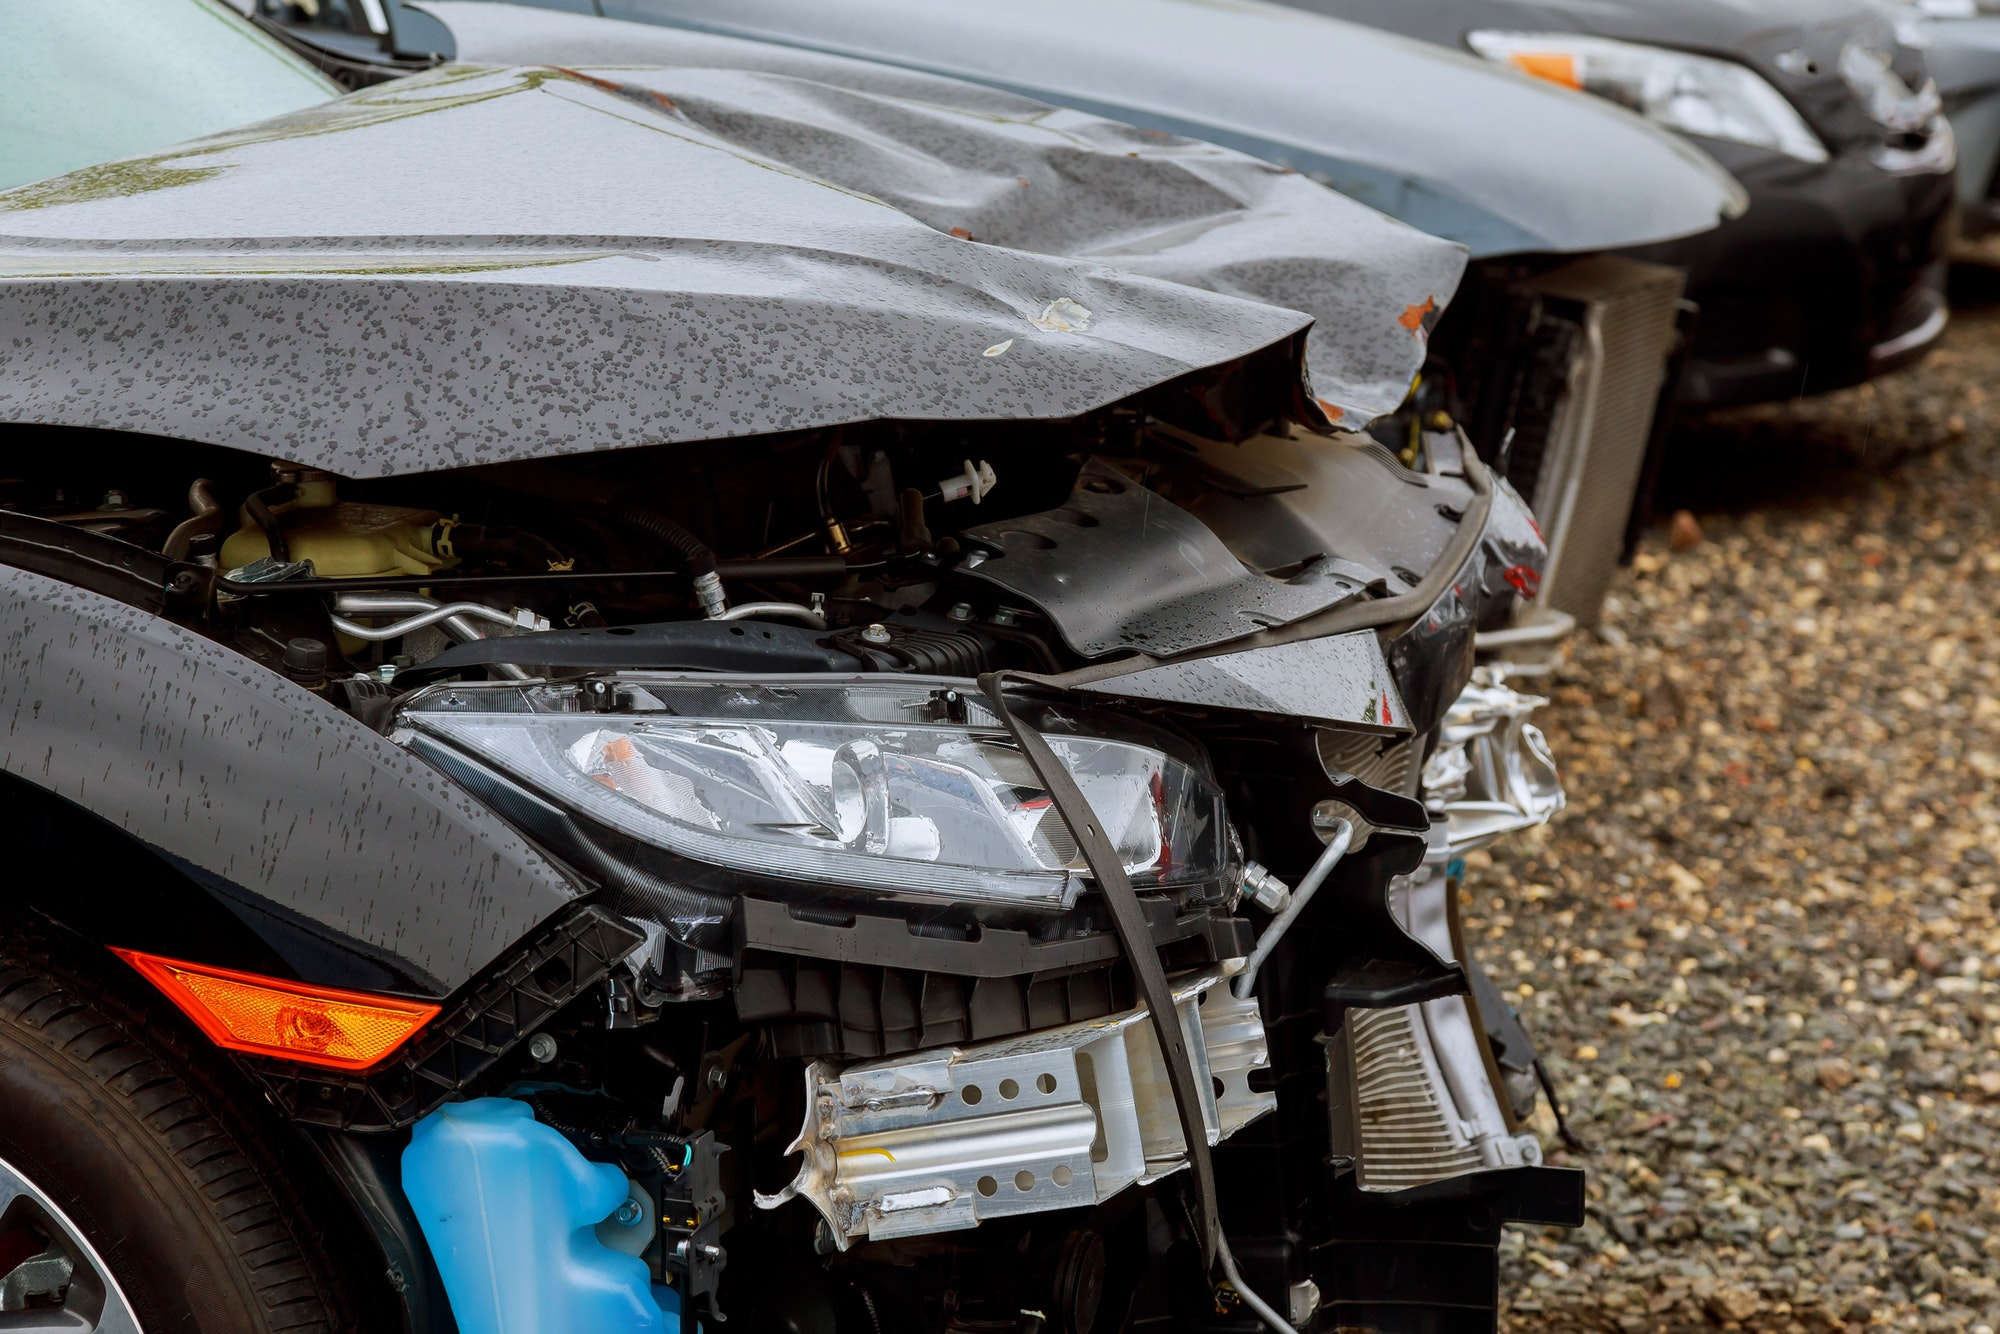 crash auto body automobile accident on street, damaged cars after collision